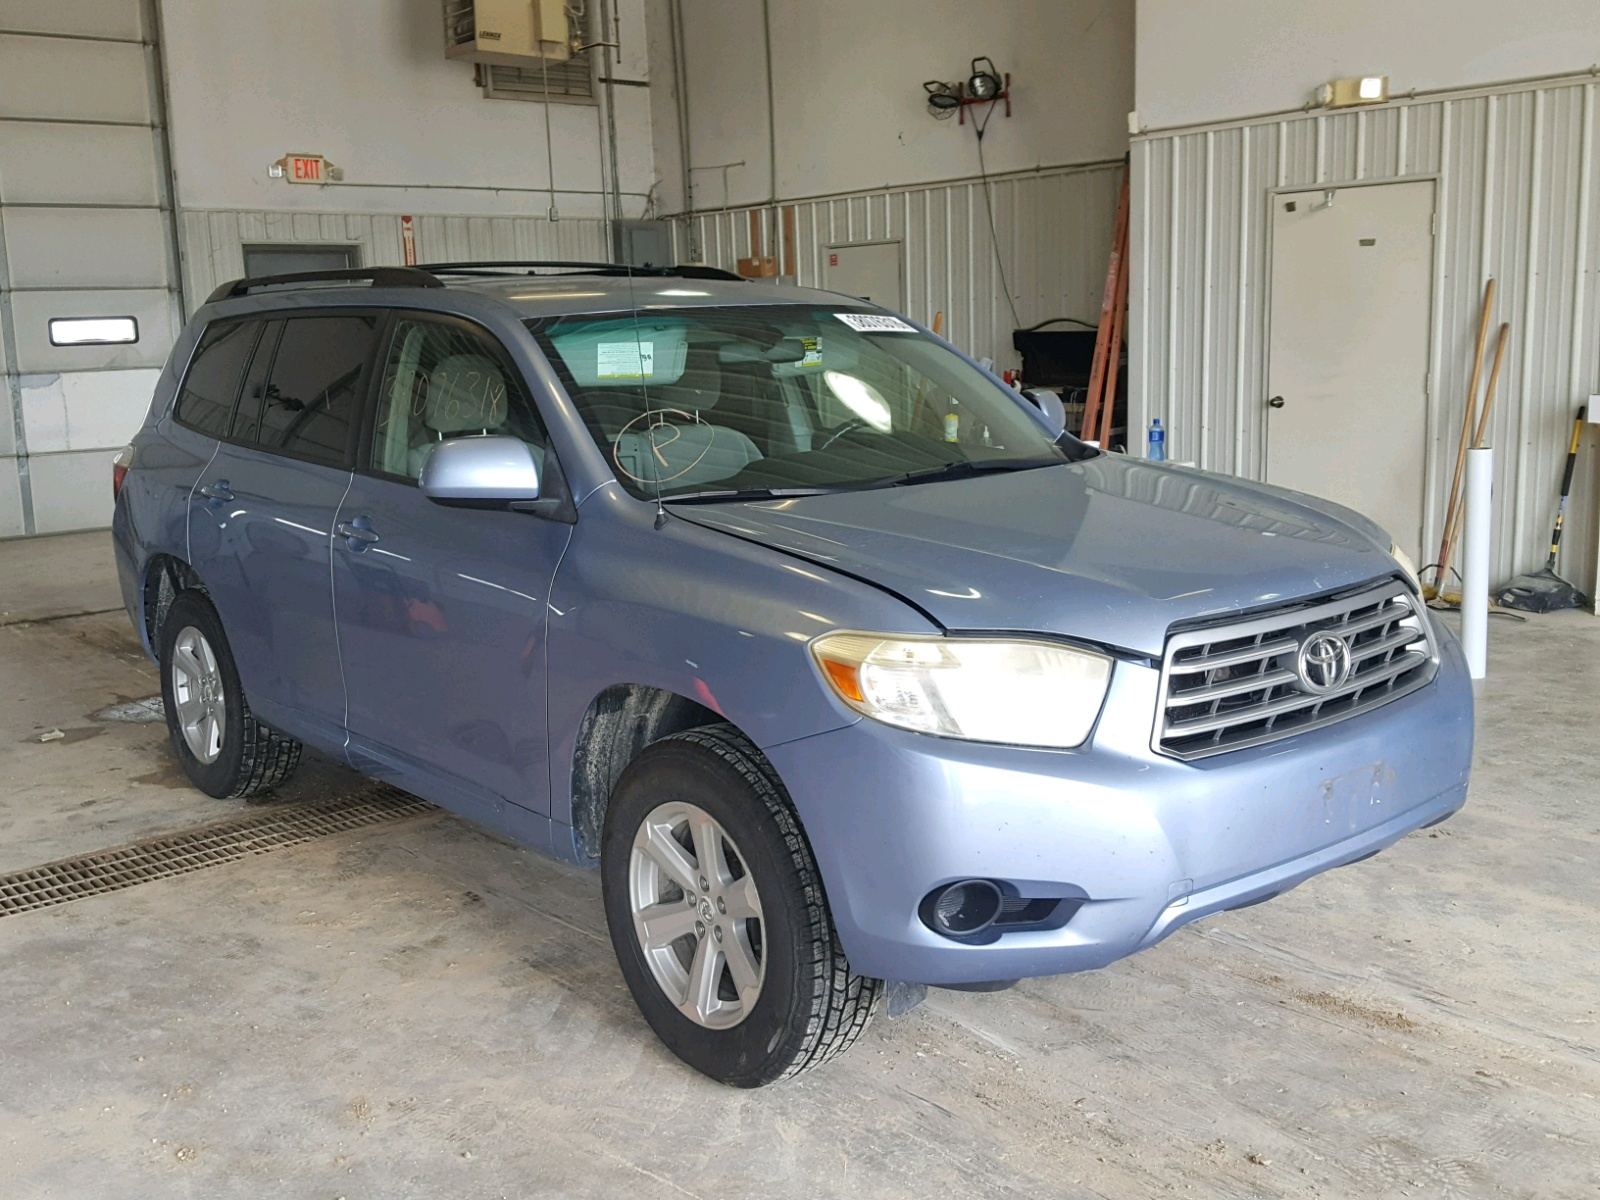 2008 Toyota Highlander for sale at Copart Columbia MO Lot